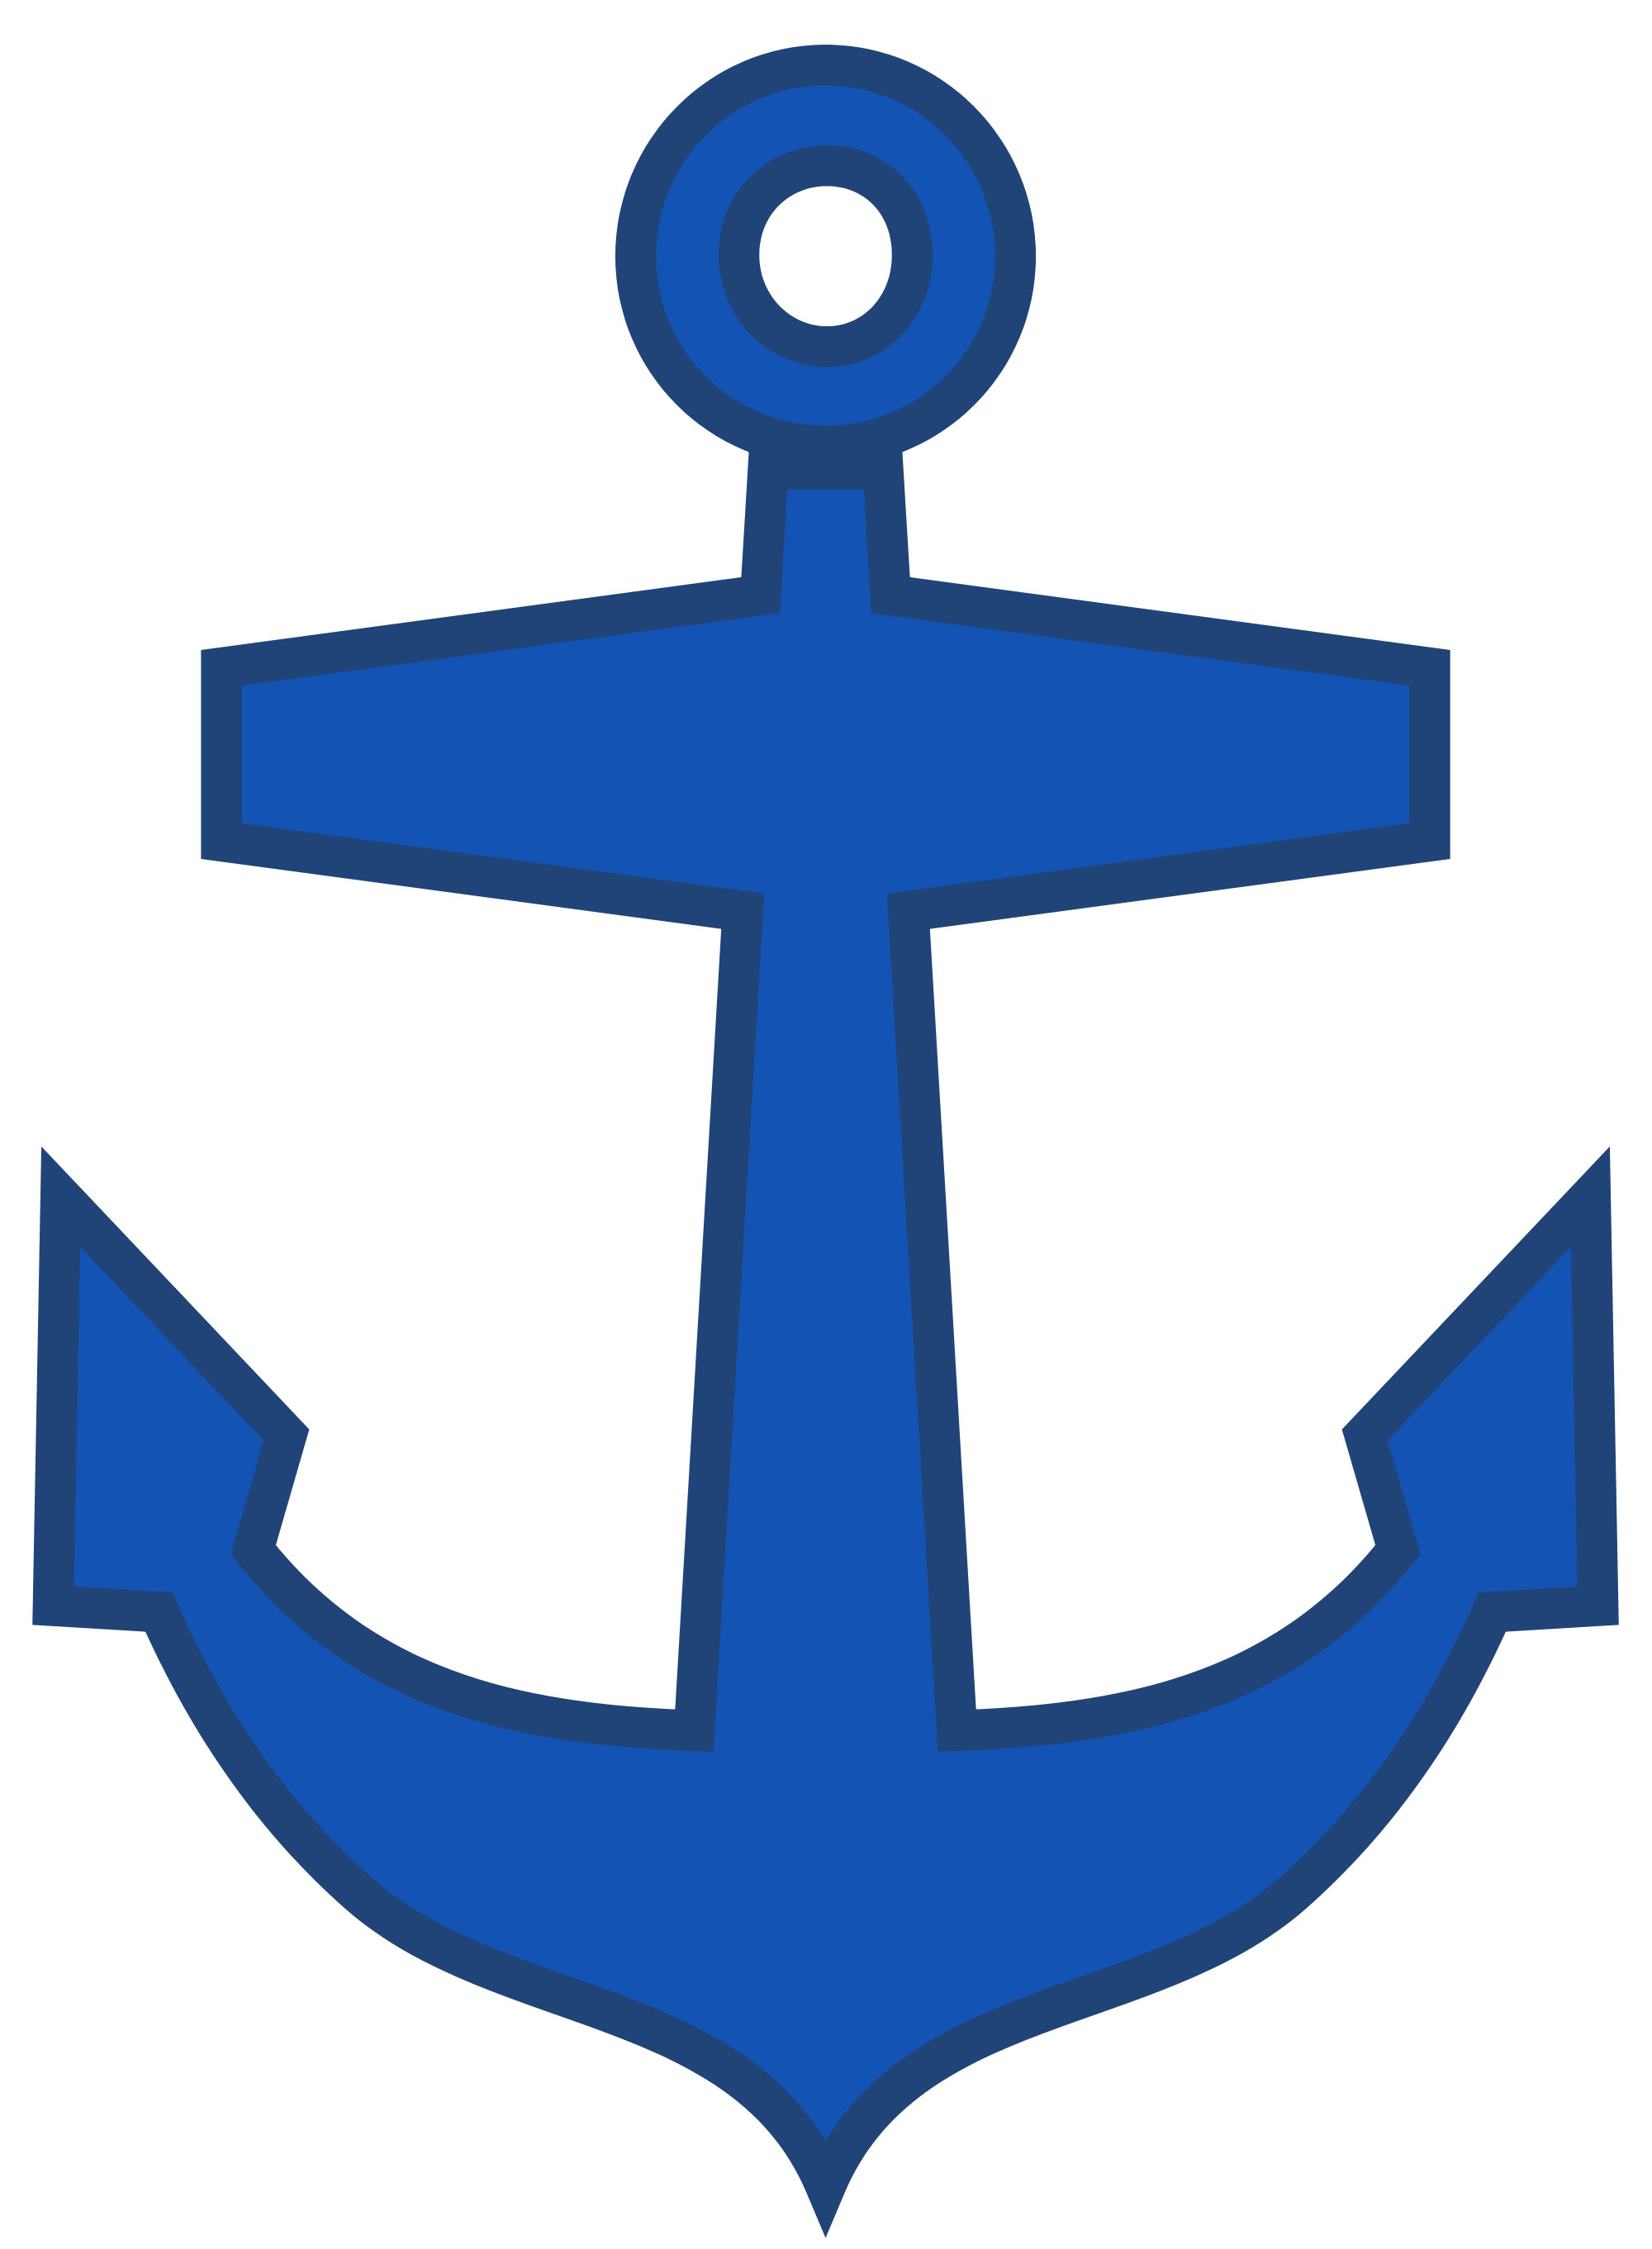 Clipart anchor blue anchor. File svg wikimedia commons